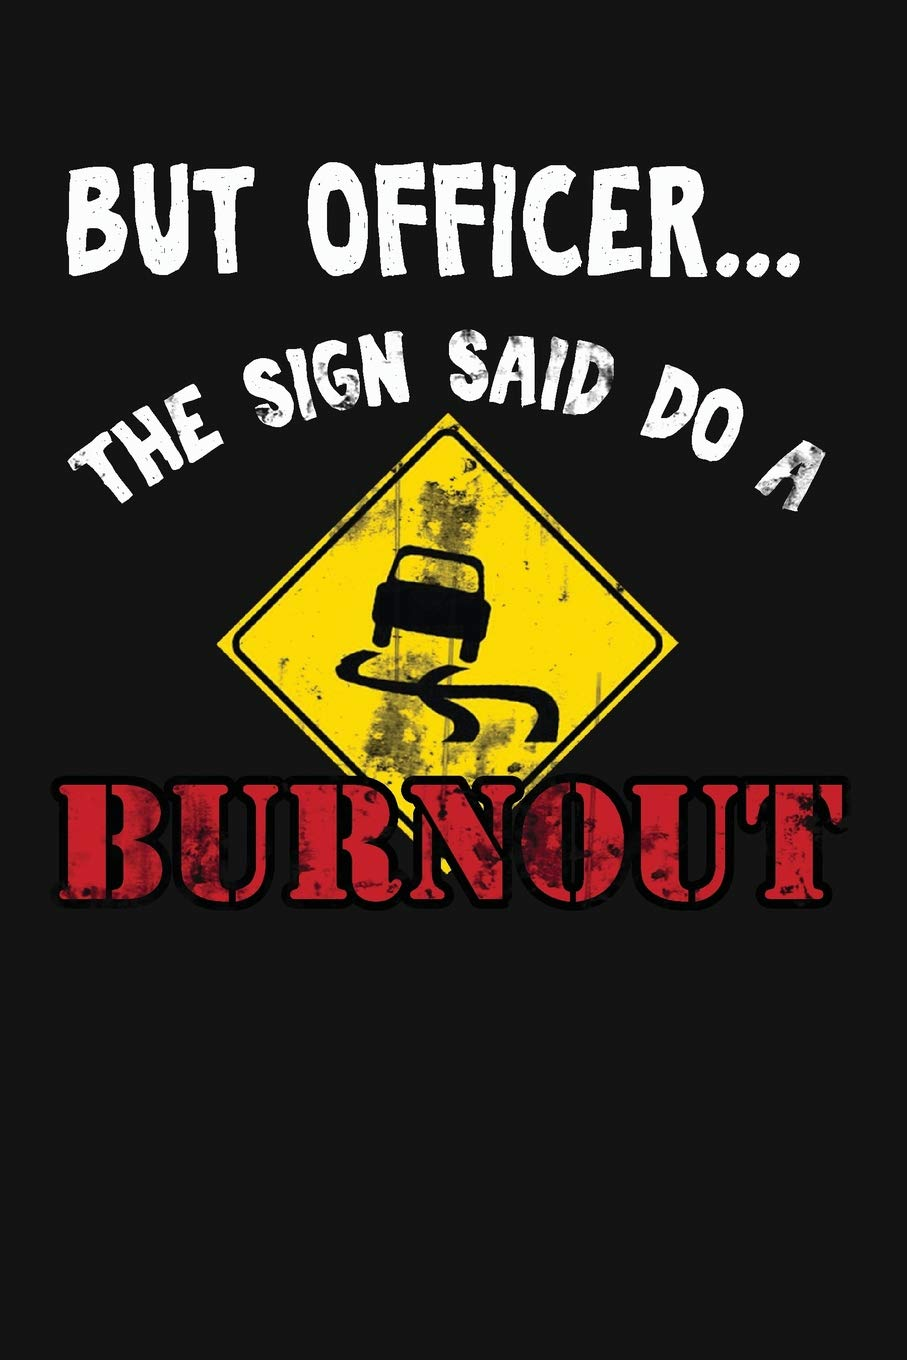 But Officer The Sign Said Do A Burnout Funny Driving Gifts For Women Men Novelty Car Enthusiast Or Lover Themed Birthday Gift Ideas Notebook